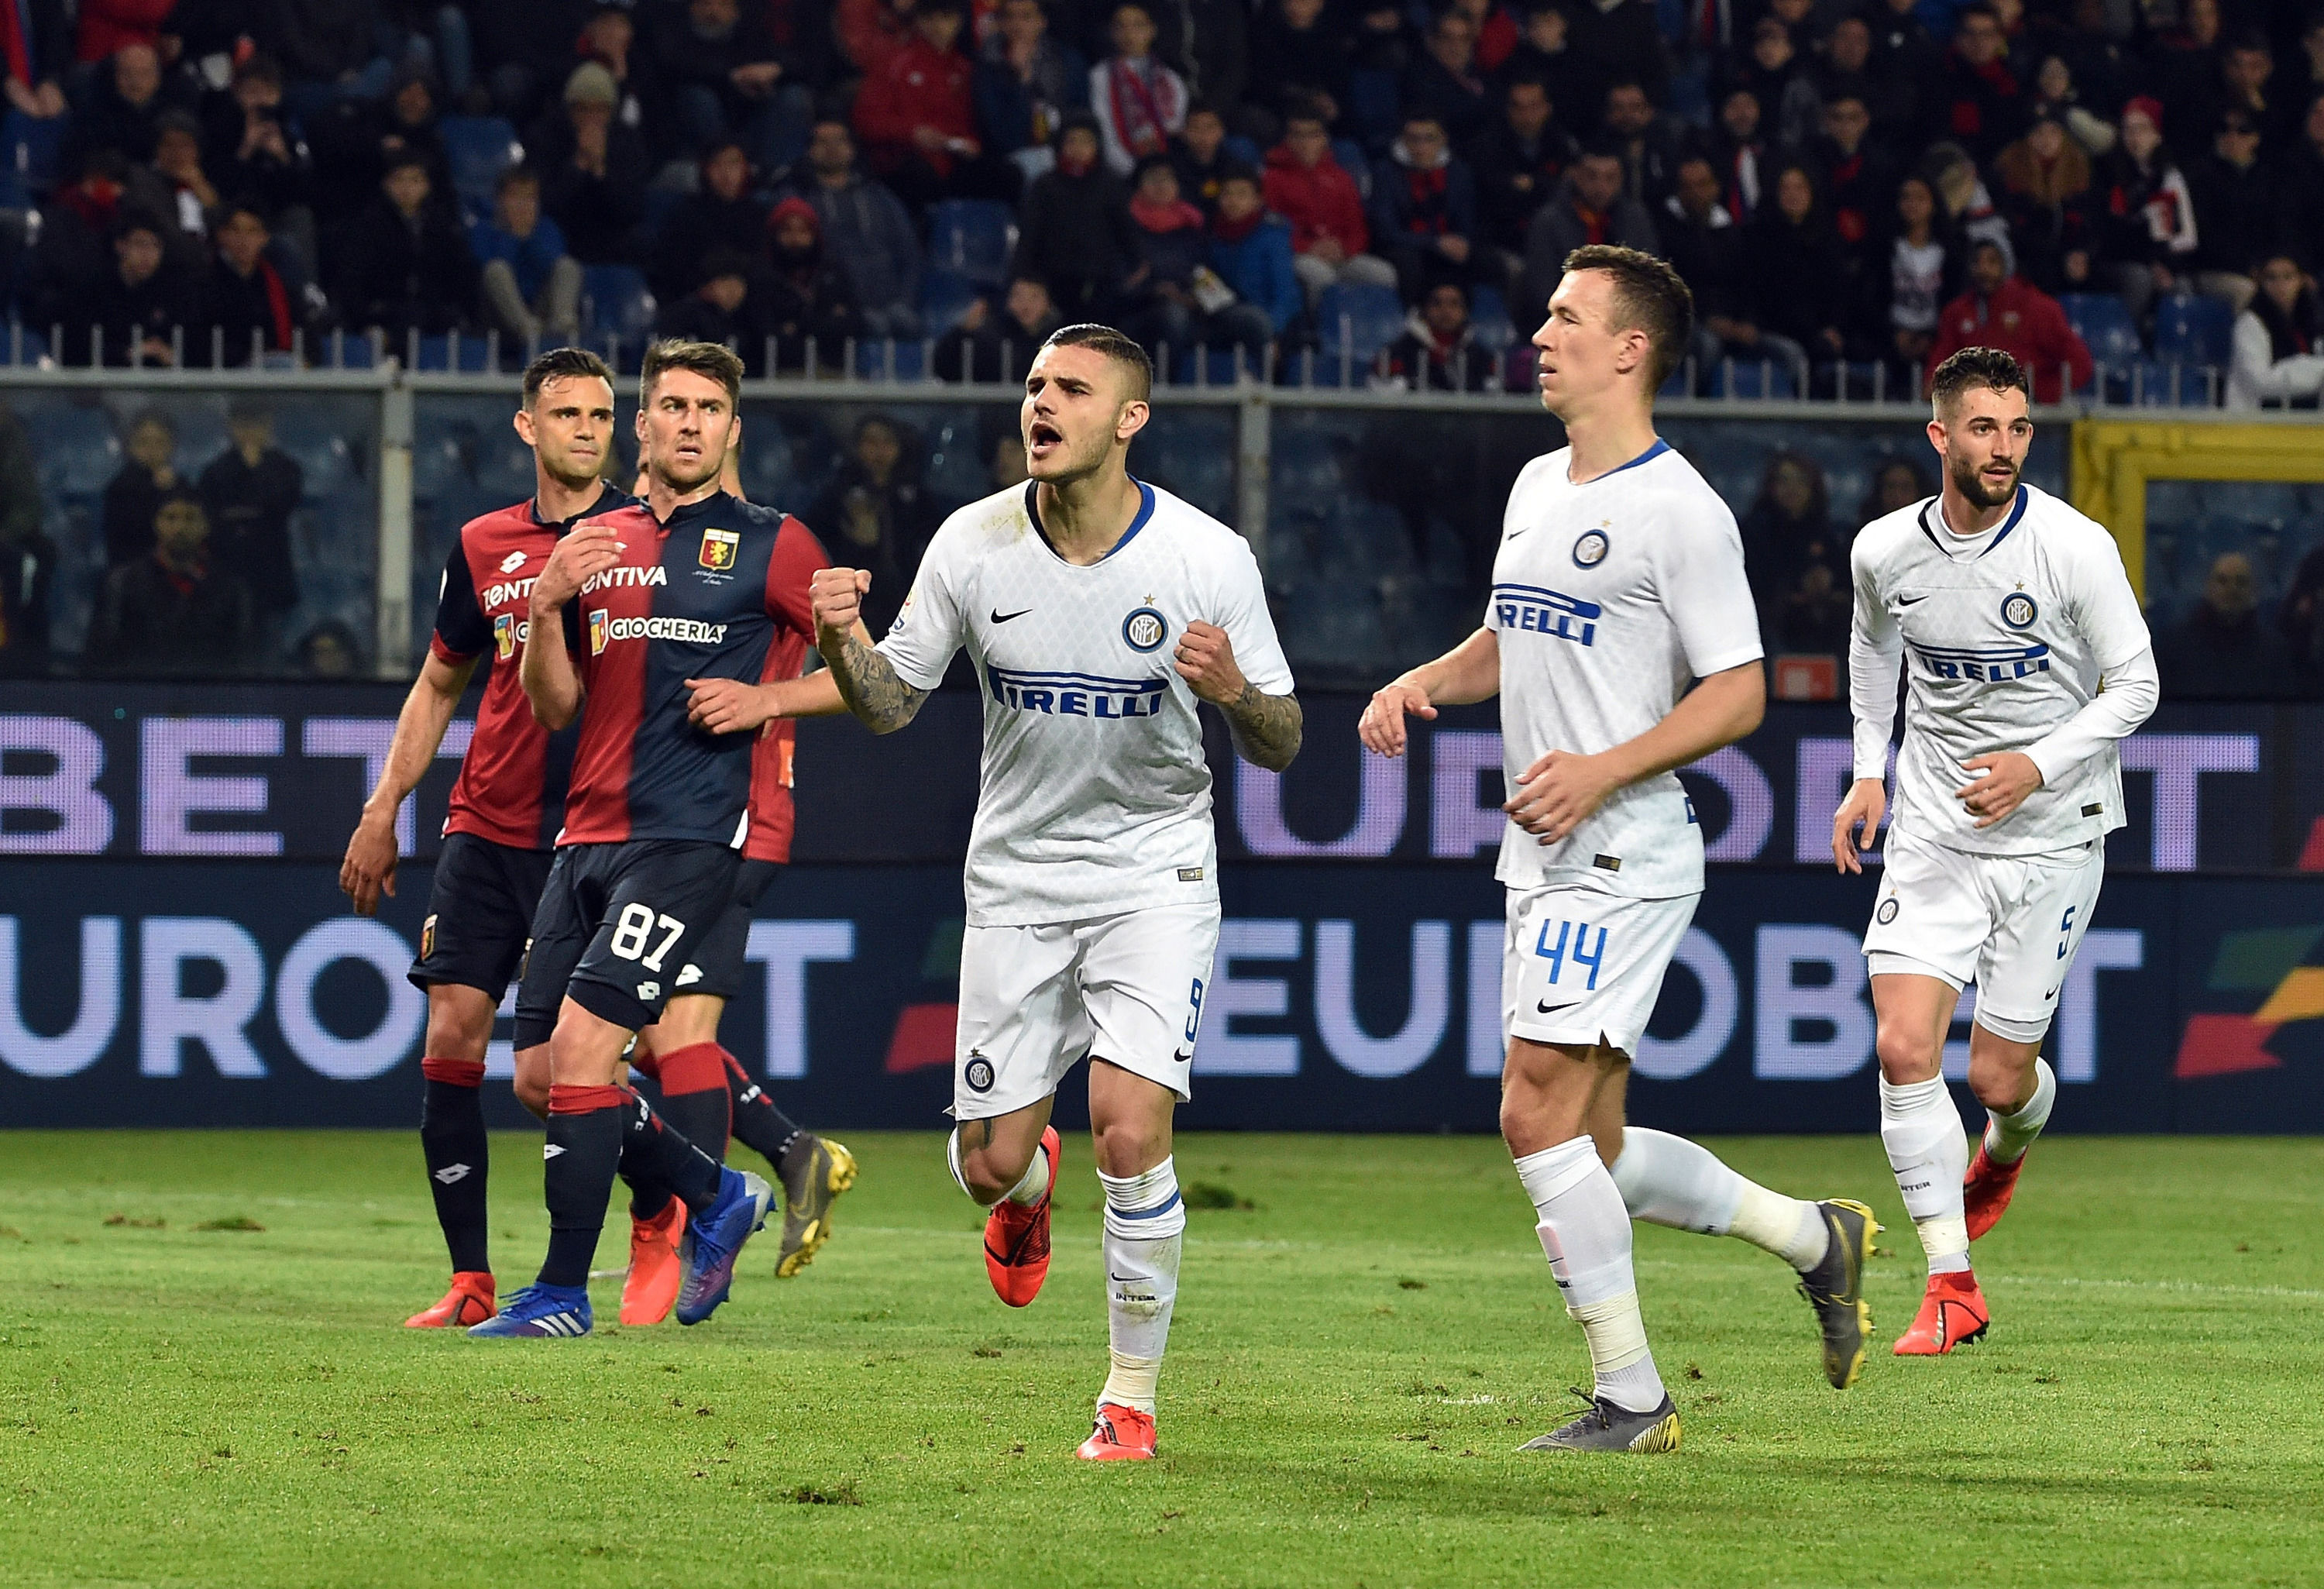 The photo gallery from Genoa vs. Inter